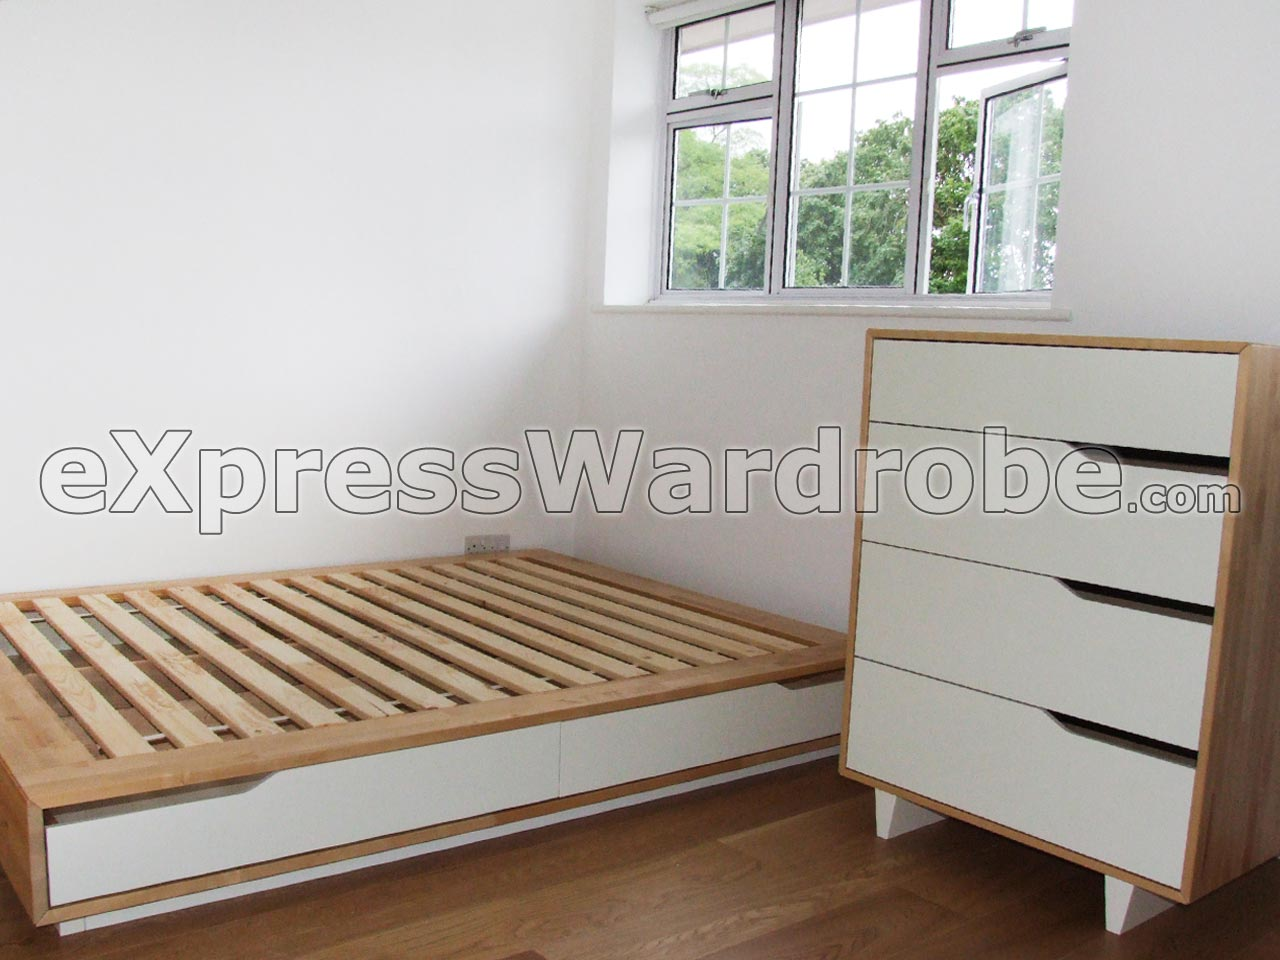 ikea malm bedroom furniture. mandal ikea malm bedroom furniture e